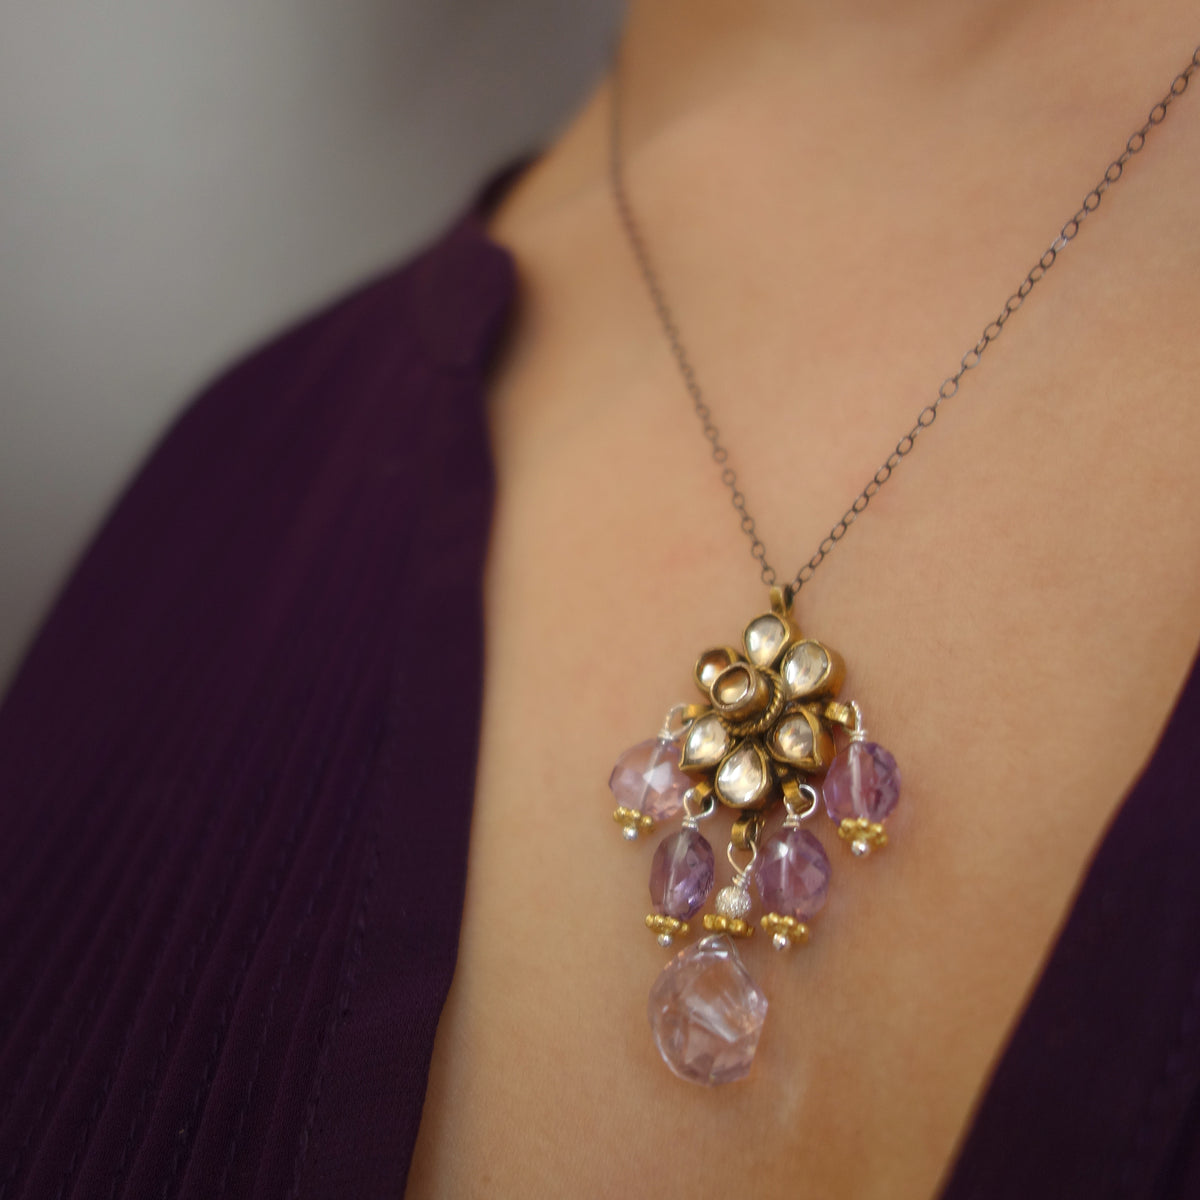 Isn't this Romantic pink amethyst necklace